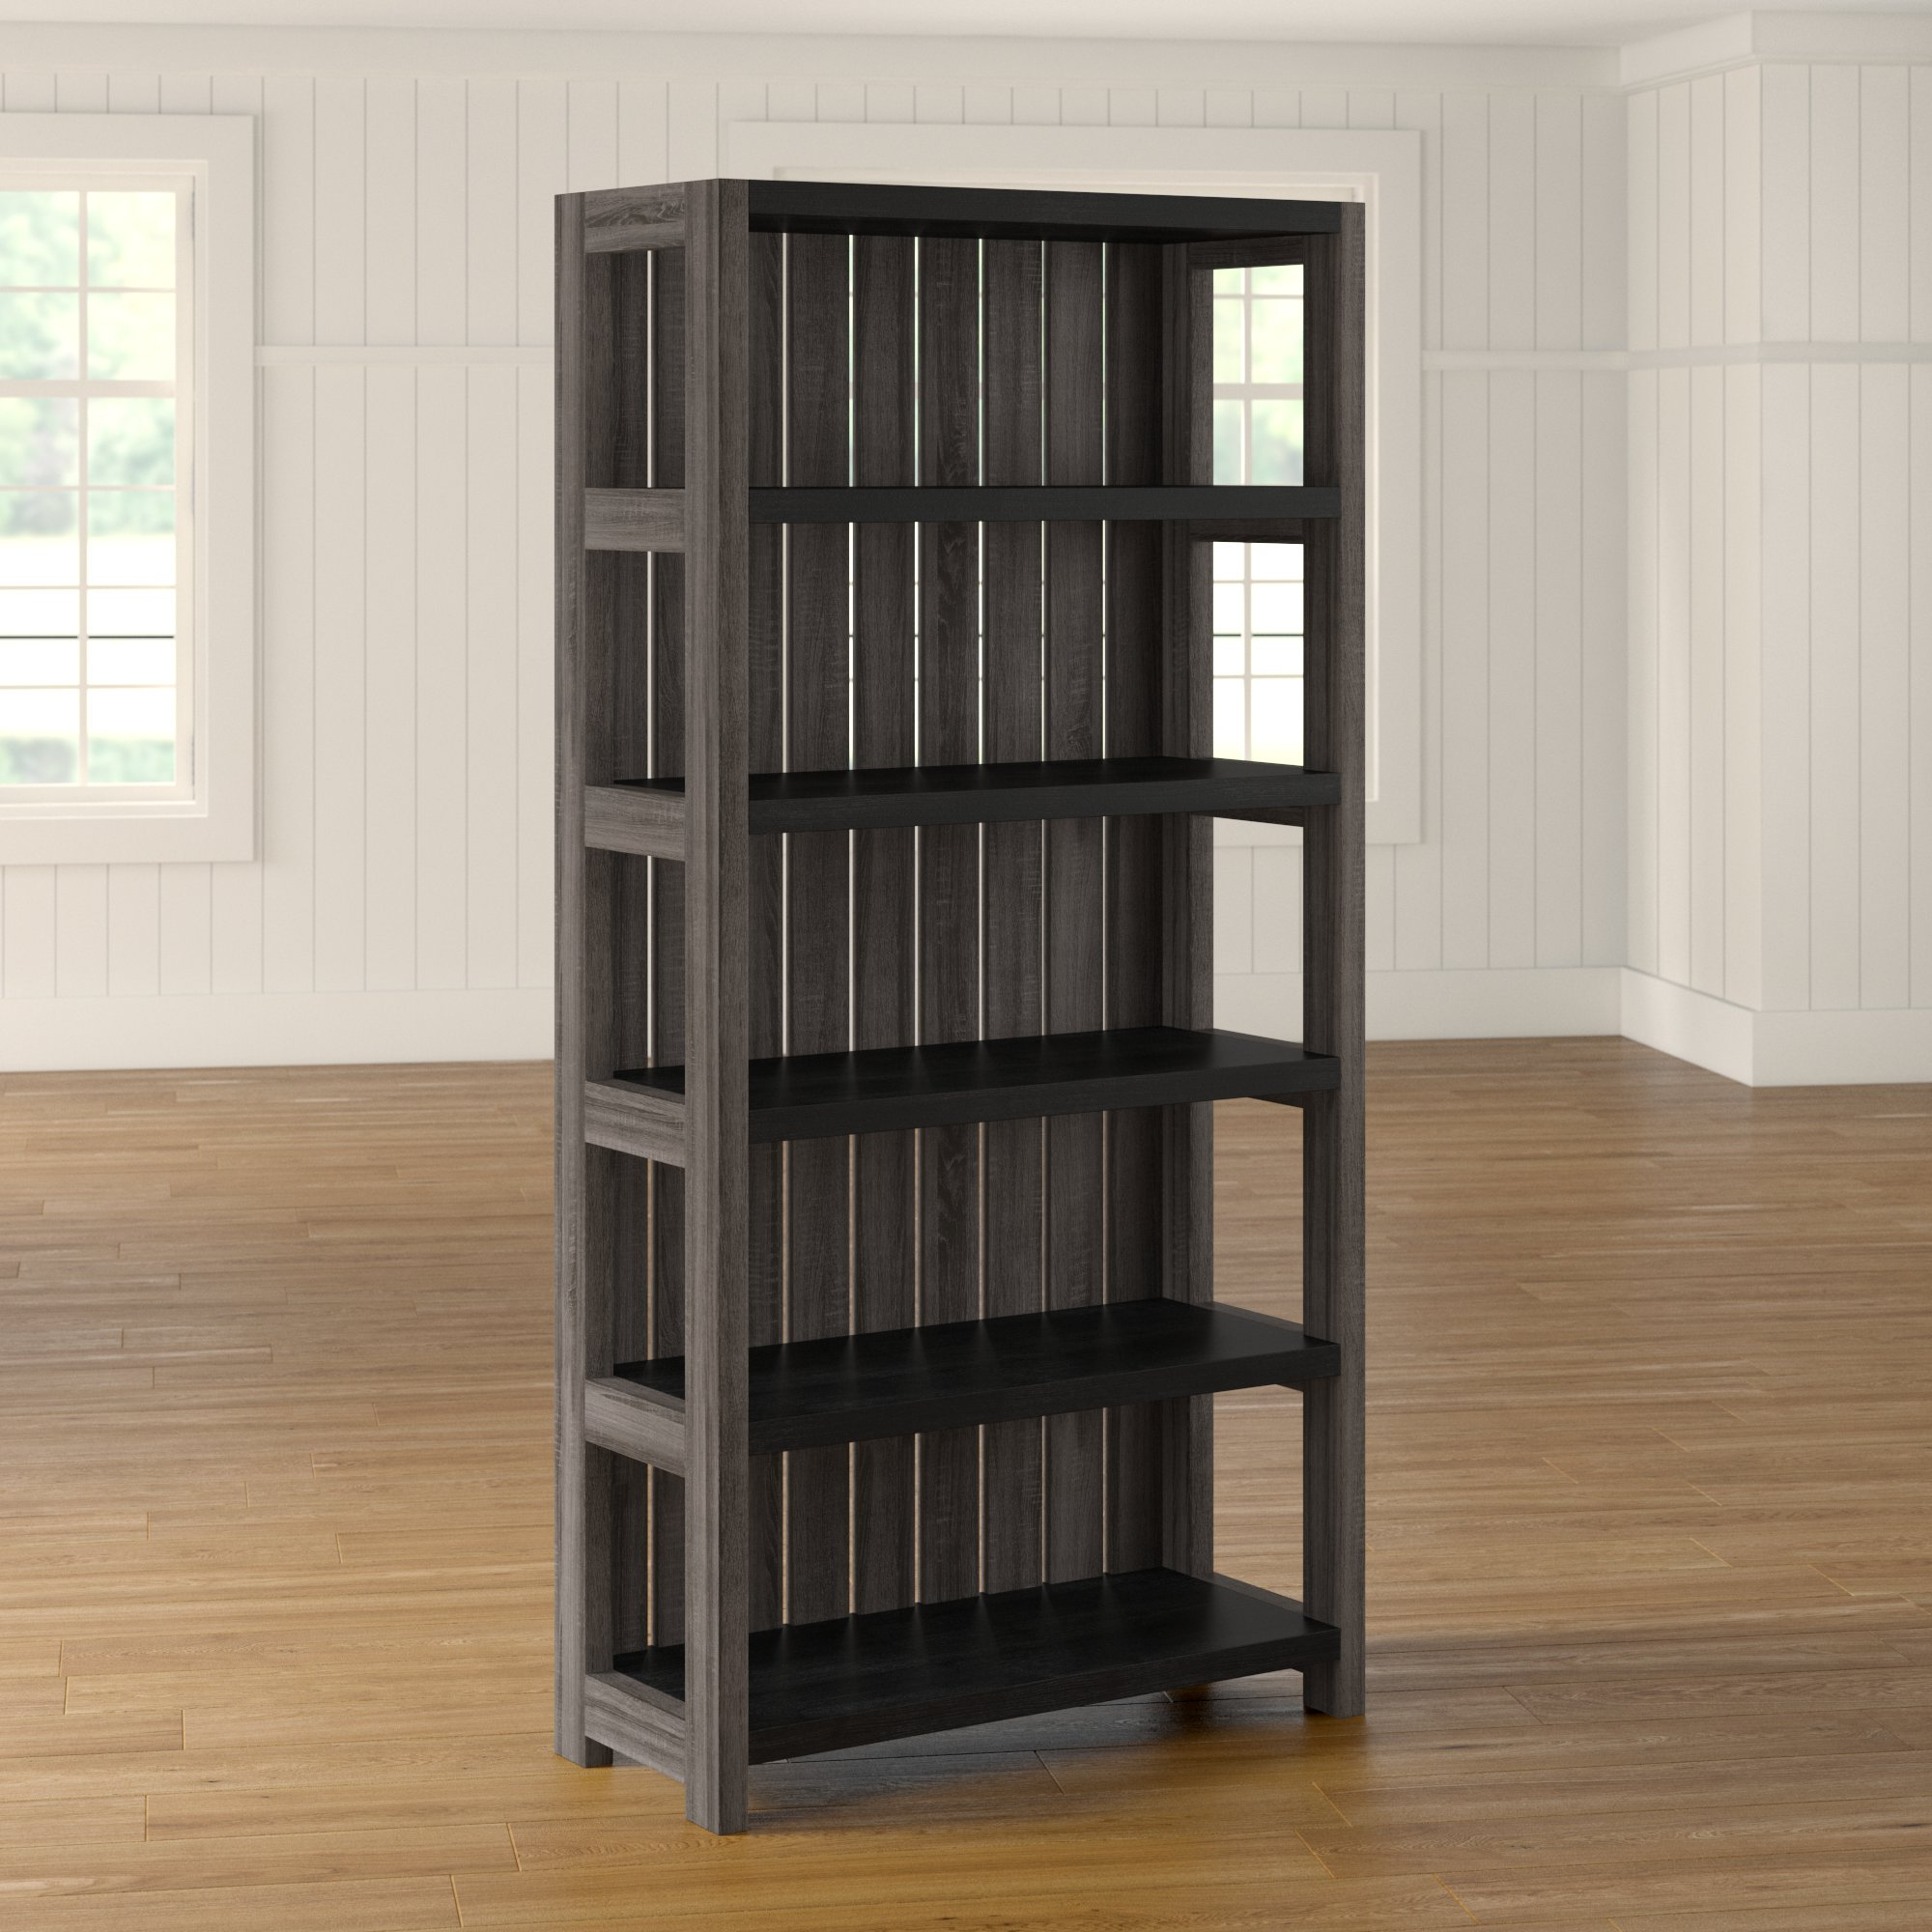 Kelleia Standard Bookcase Throughout Most Recently Released Orford Standard Bookcases (View 10 of 20)